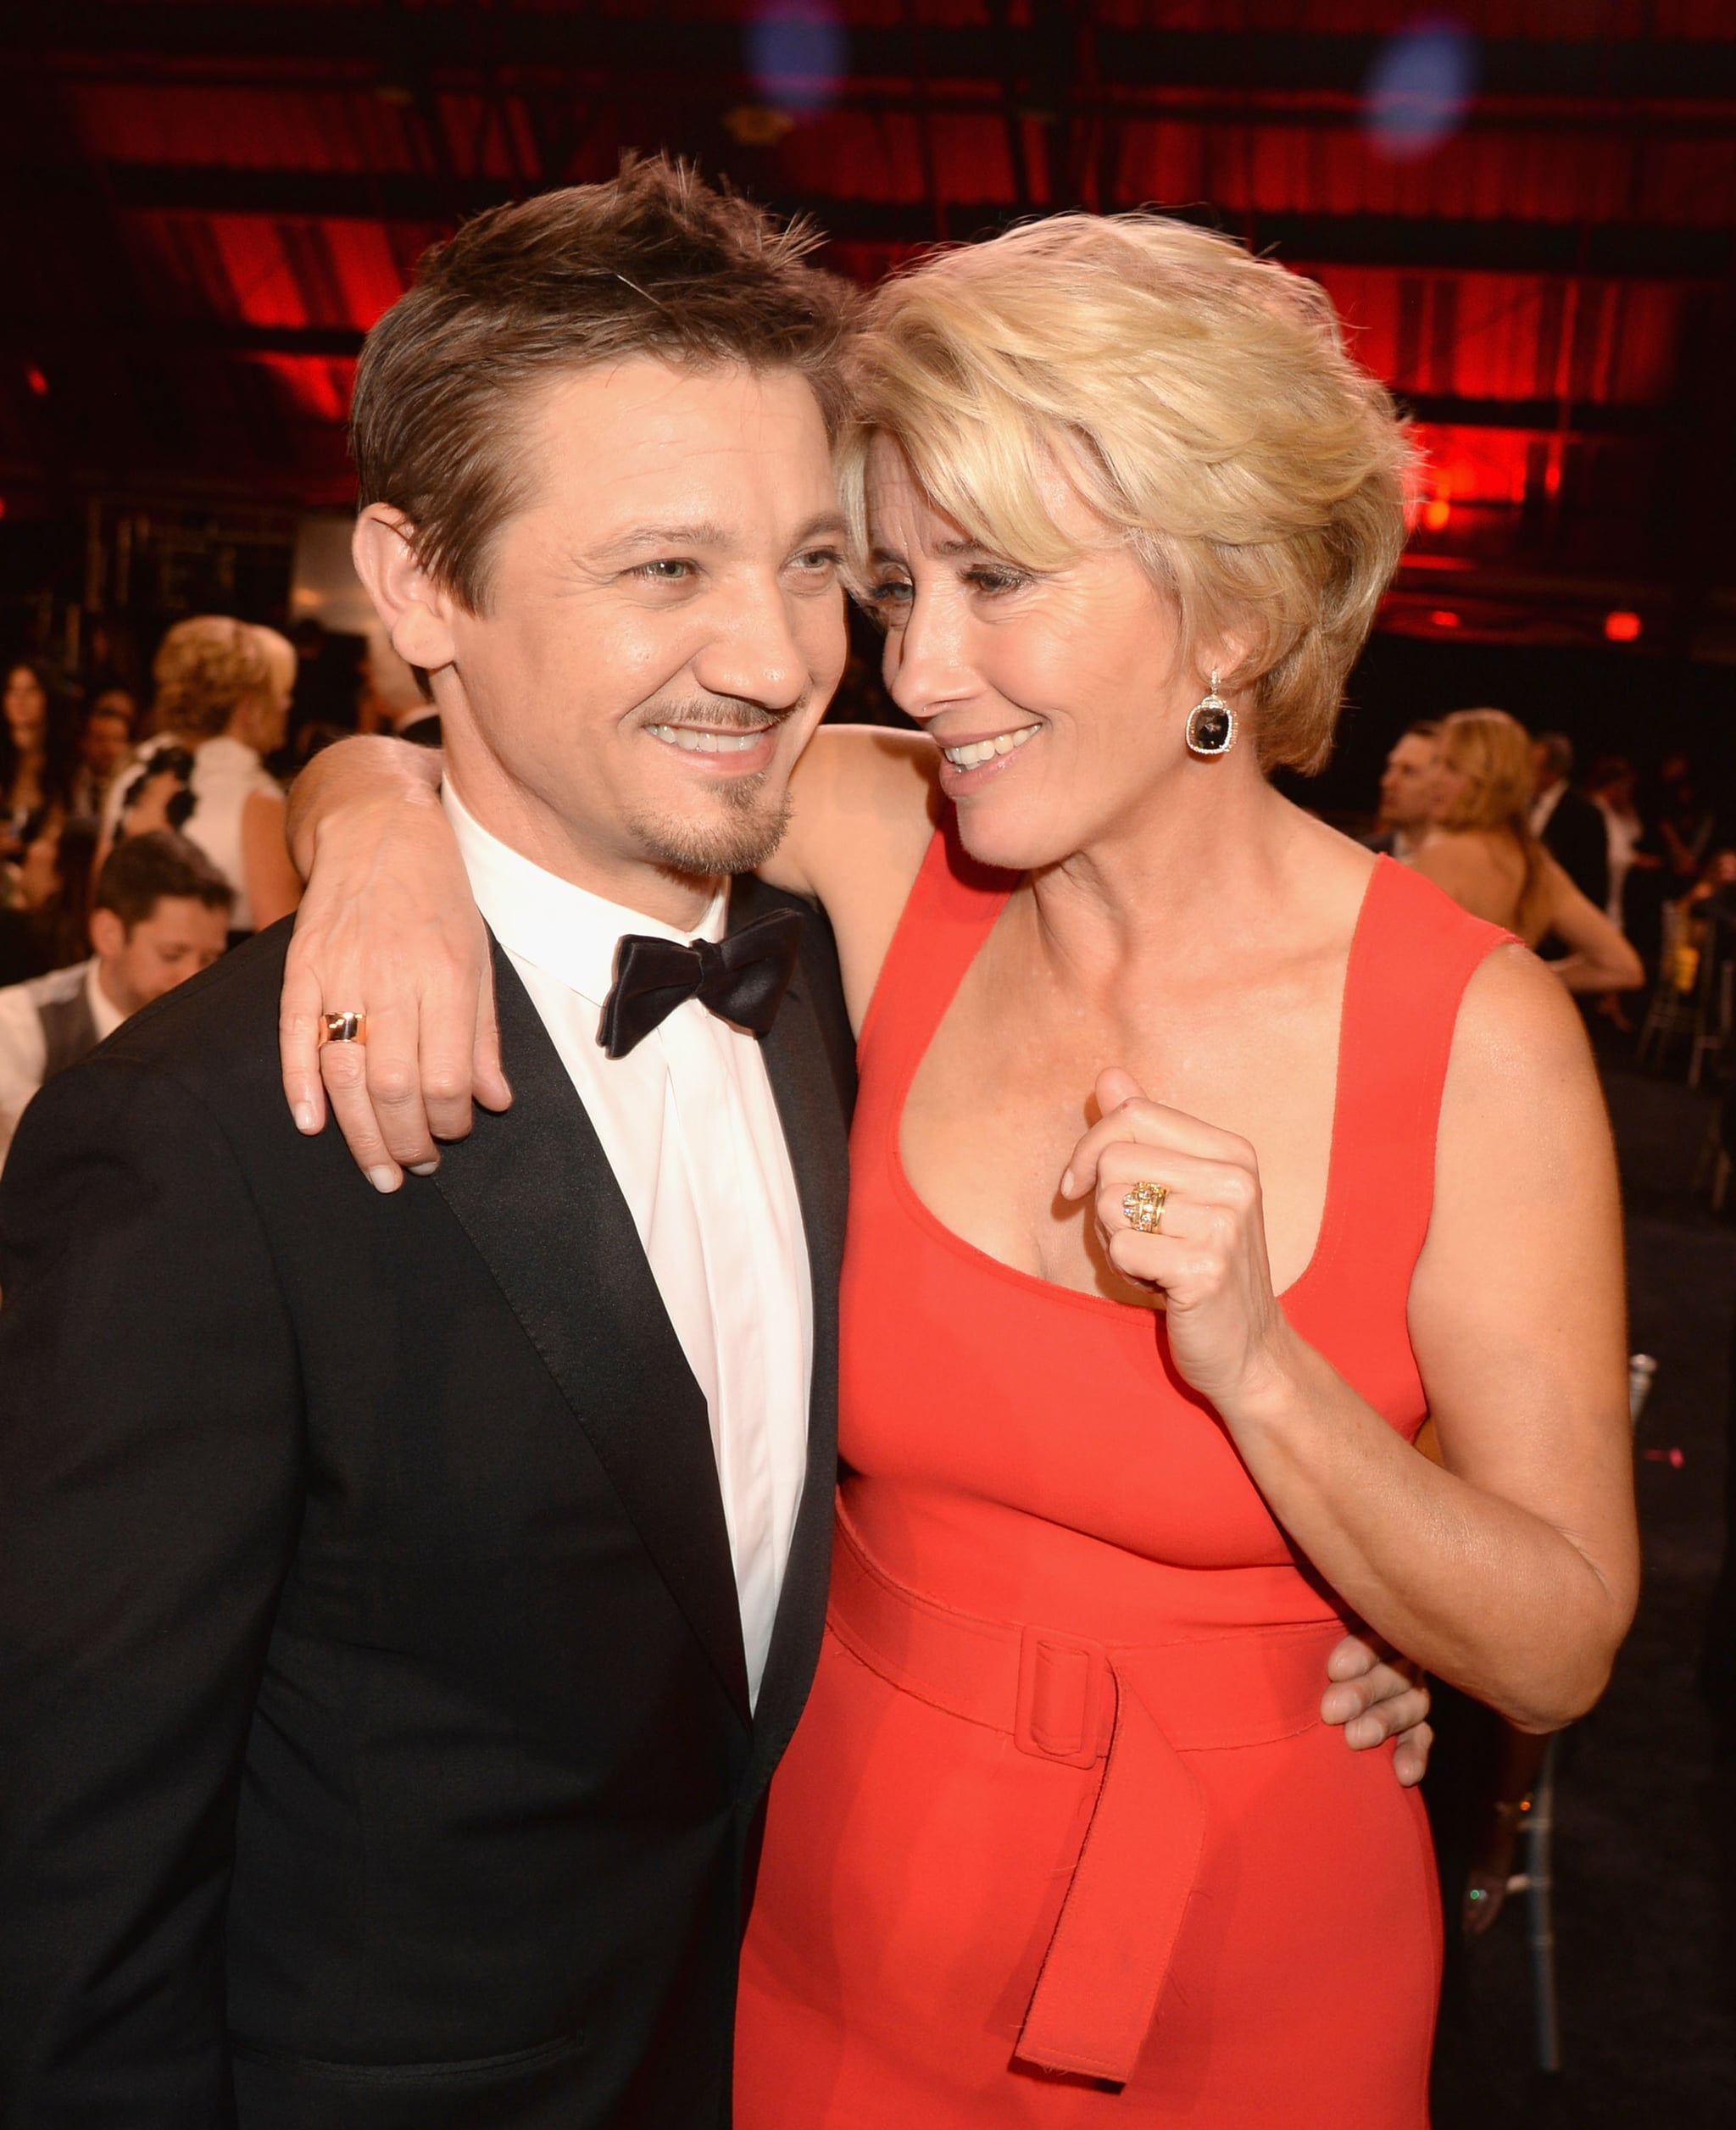 And Jeremy Renner . . .